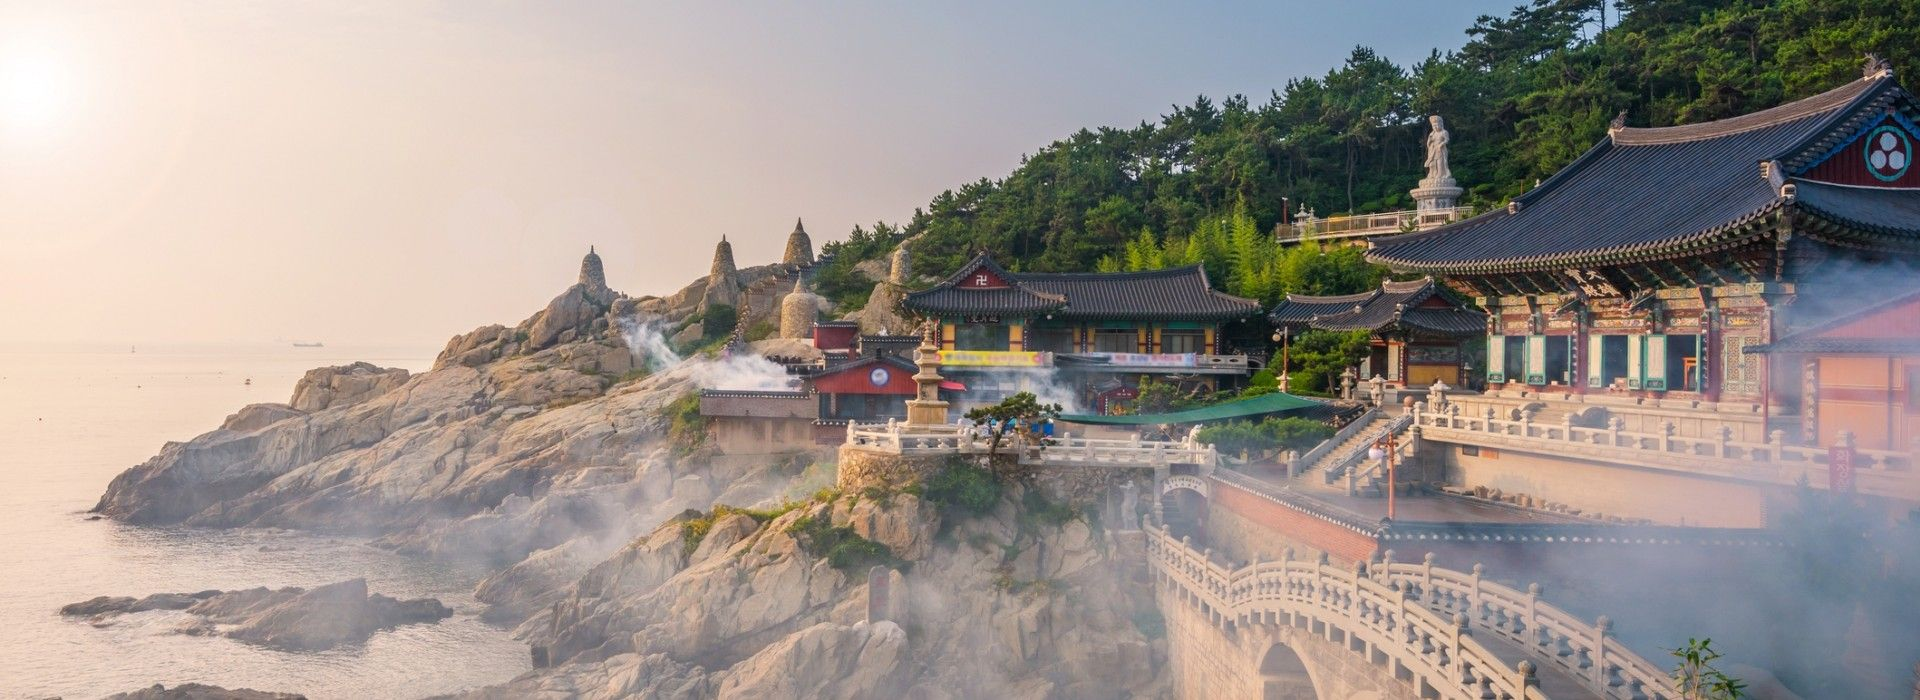 Art and architecture Tours in Boseong County